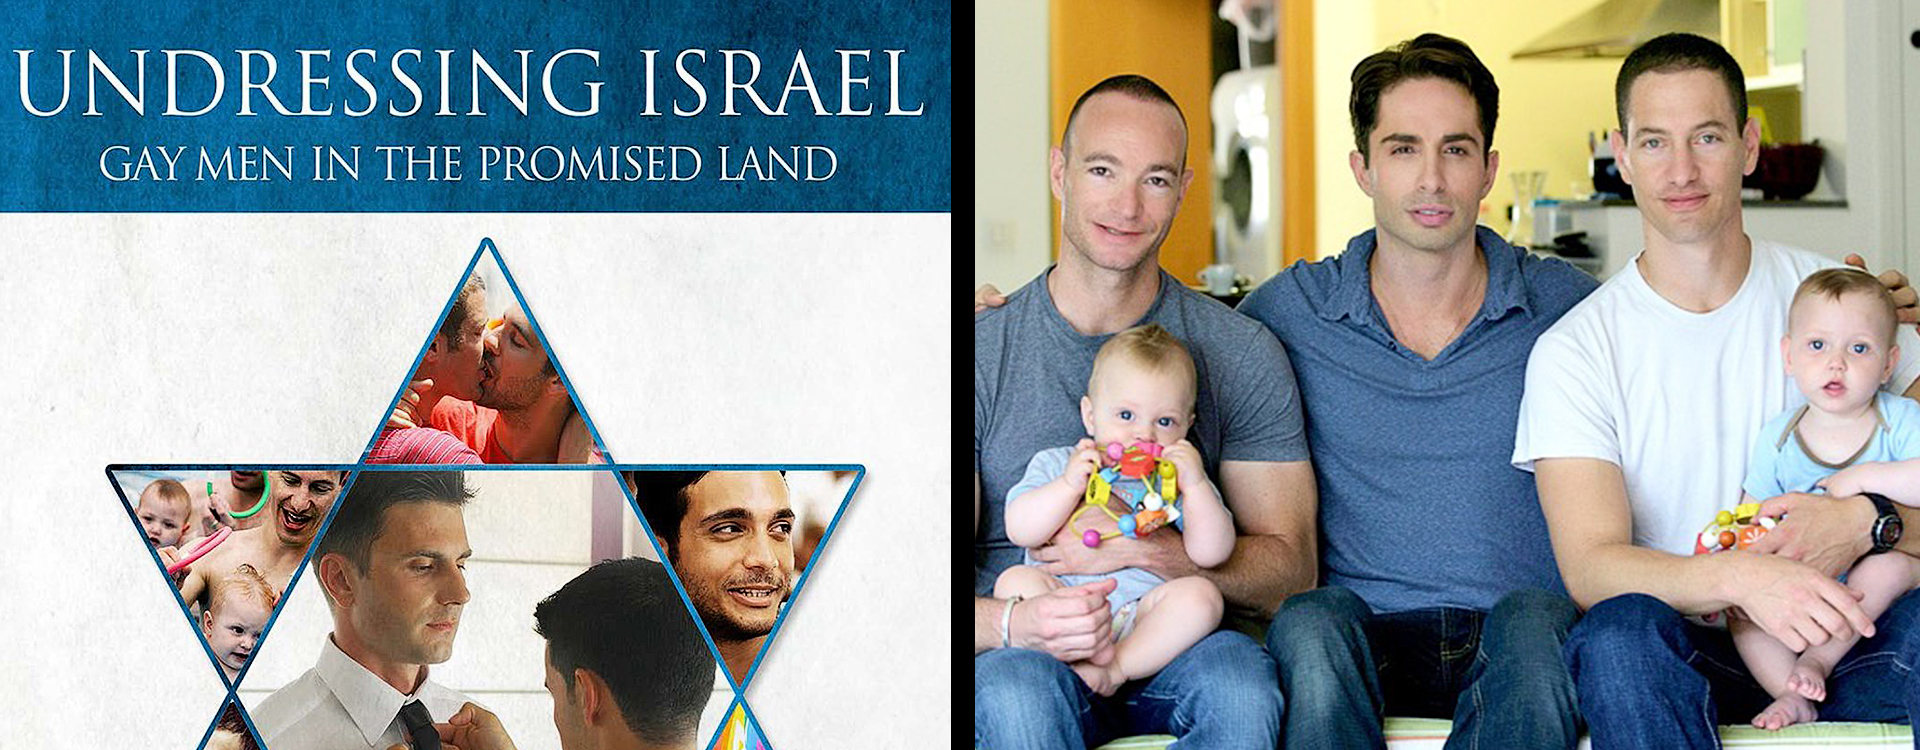 Watch 'Undressing Israel' for Free Starting Today